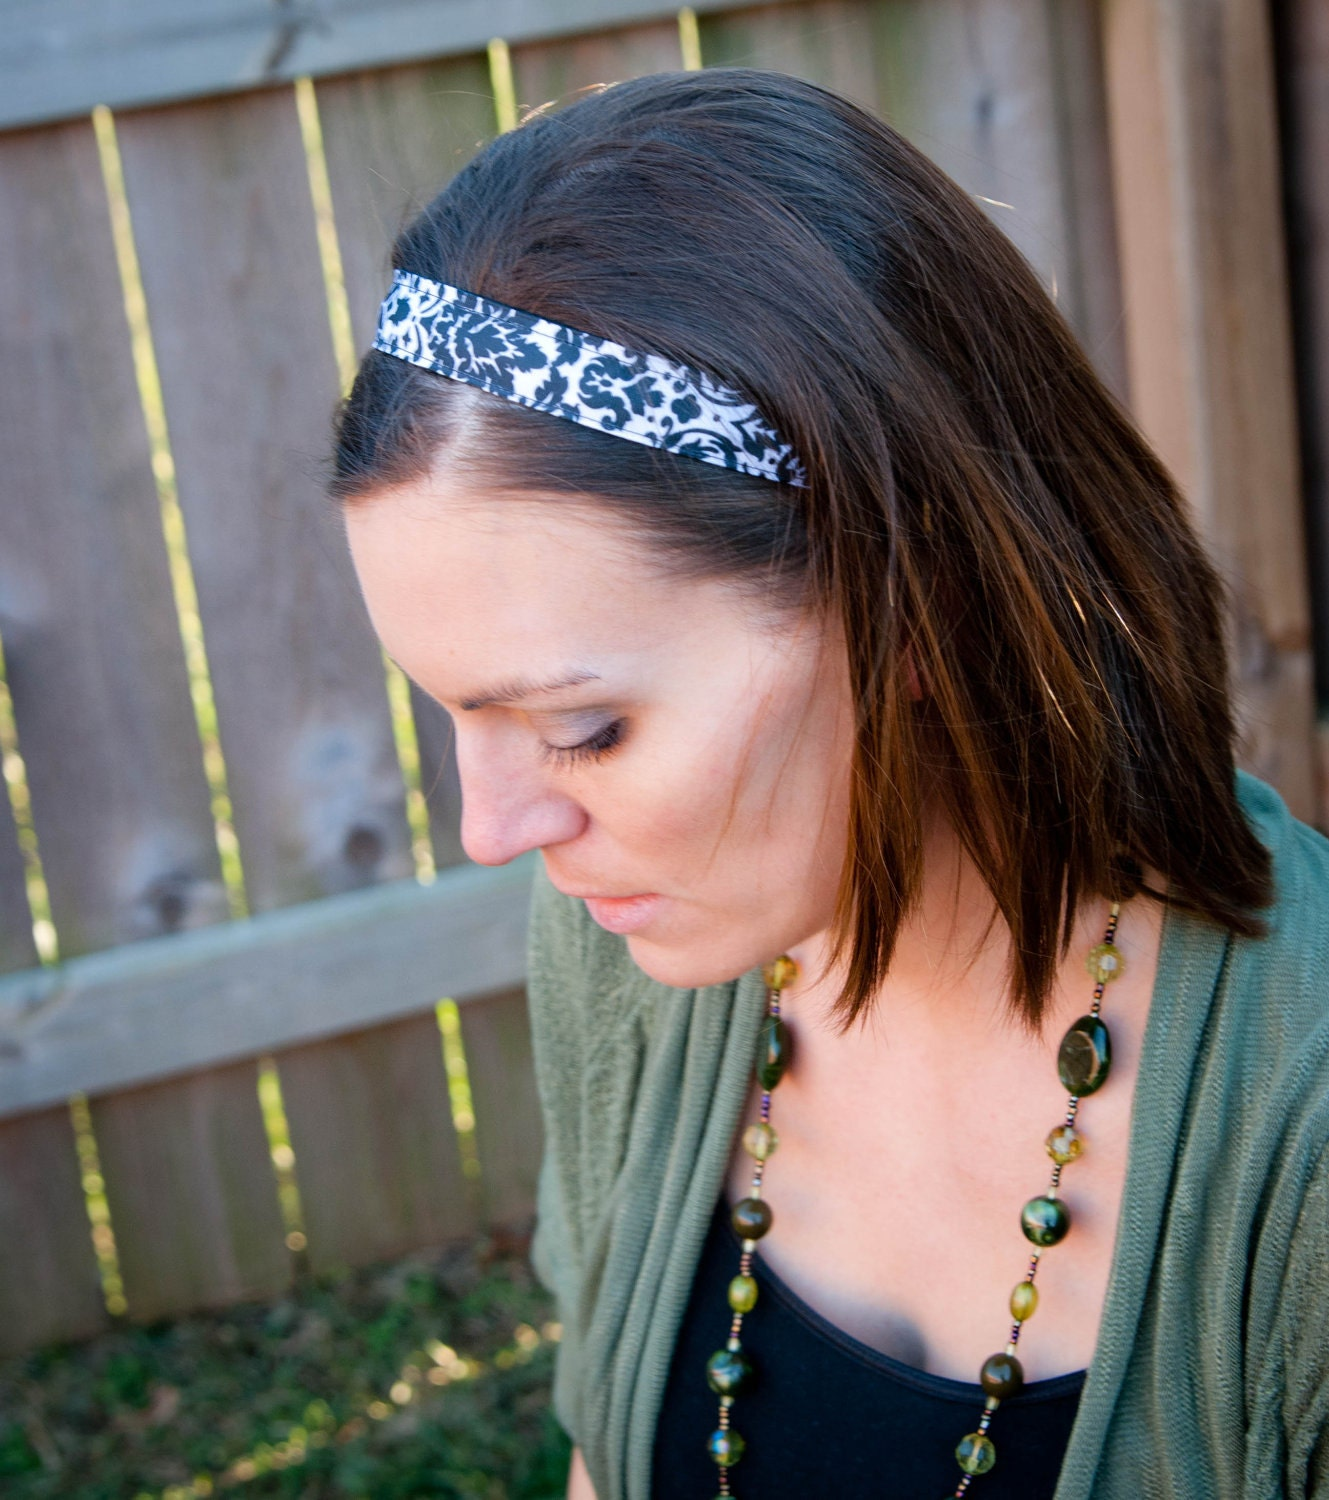 Non Slip Workout Bands: Your Place To Buy And Sell All Things Handmade